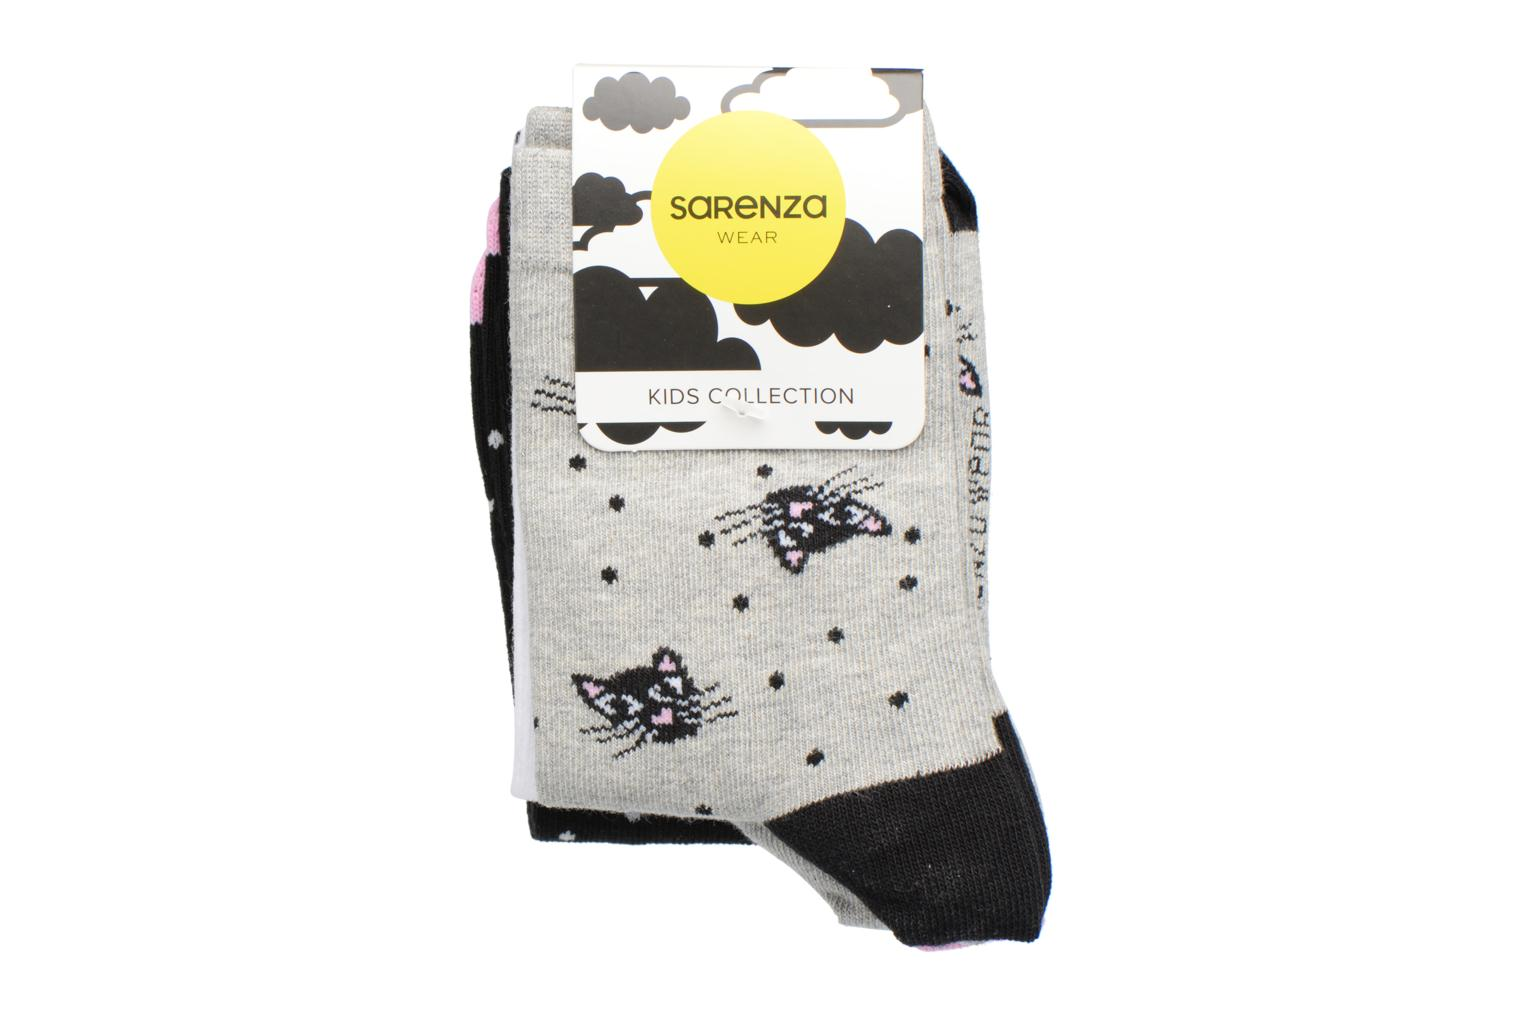 Socks & tights Sarenza Wear Chaussettes Fille Pack de 3 Chat Grey back view